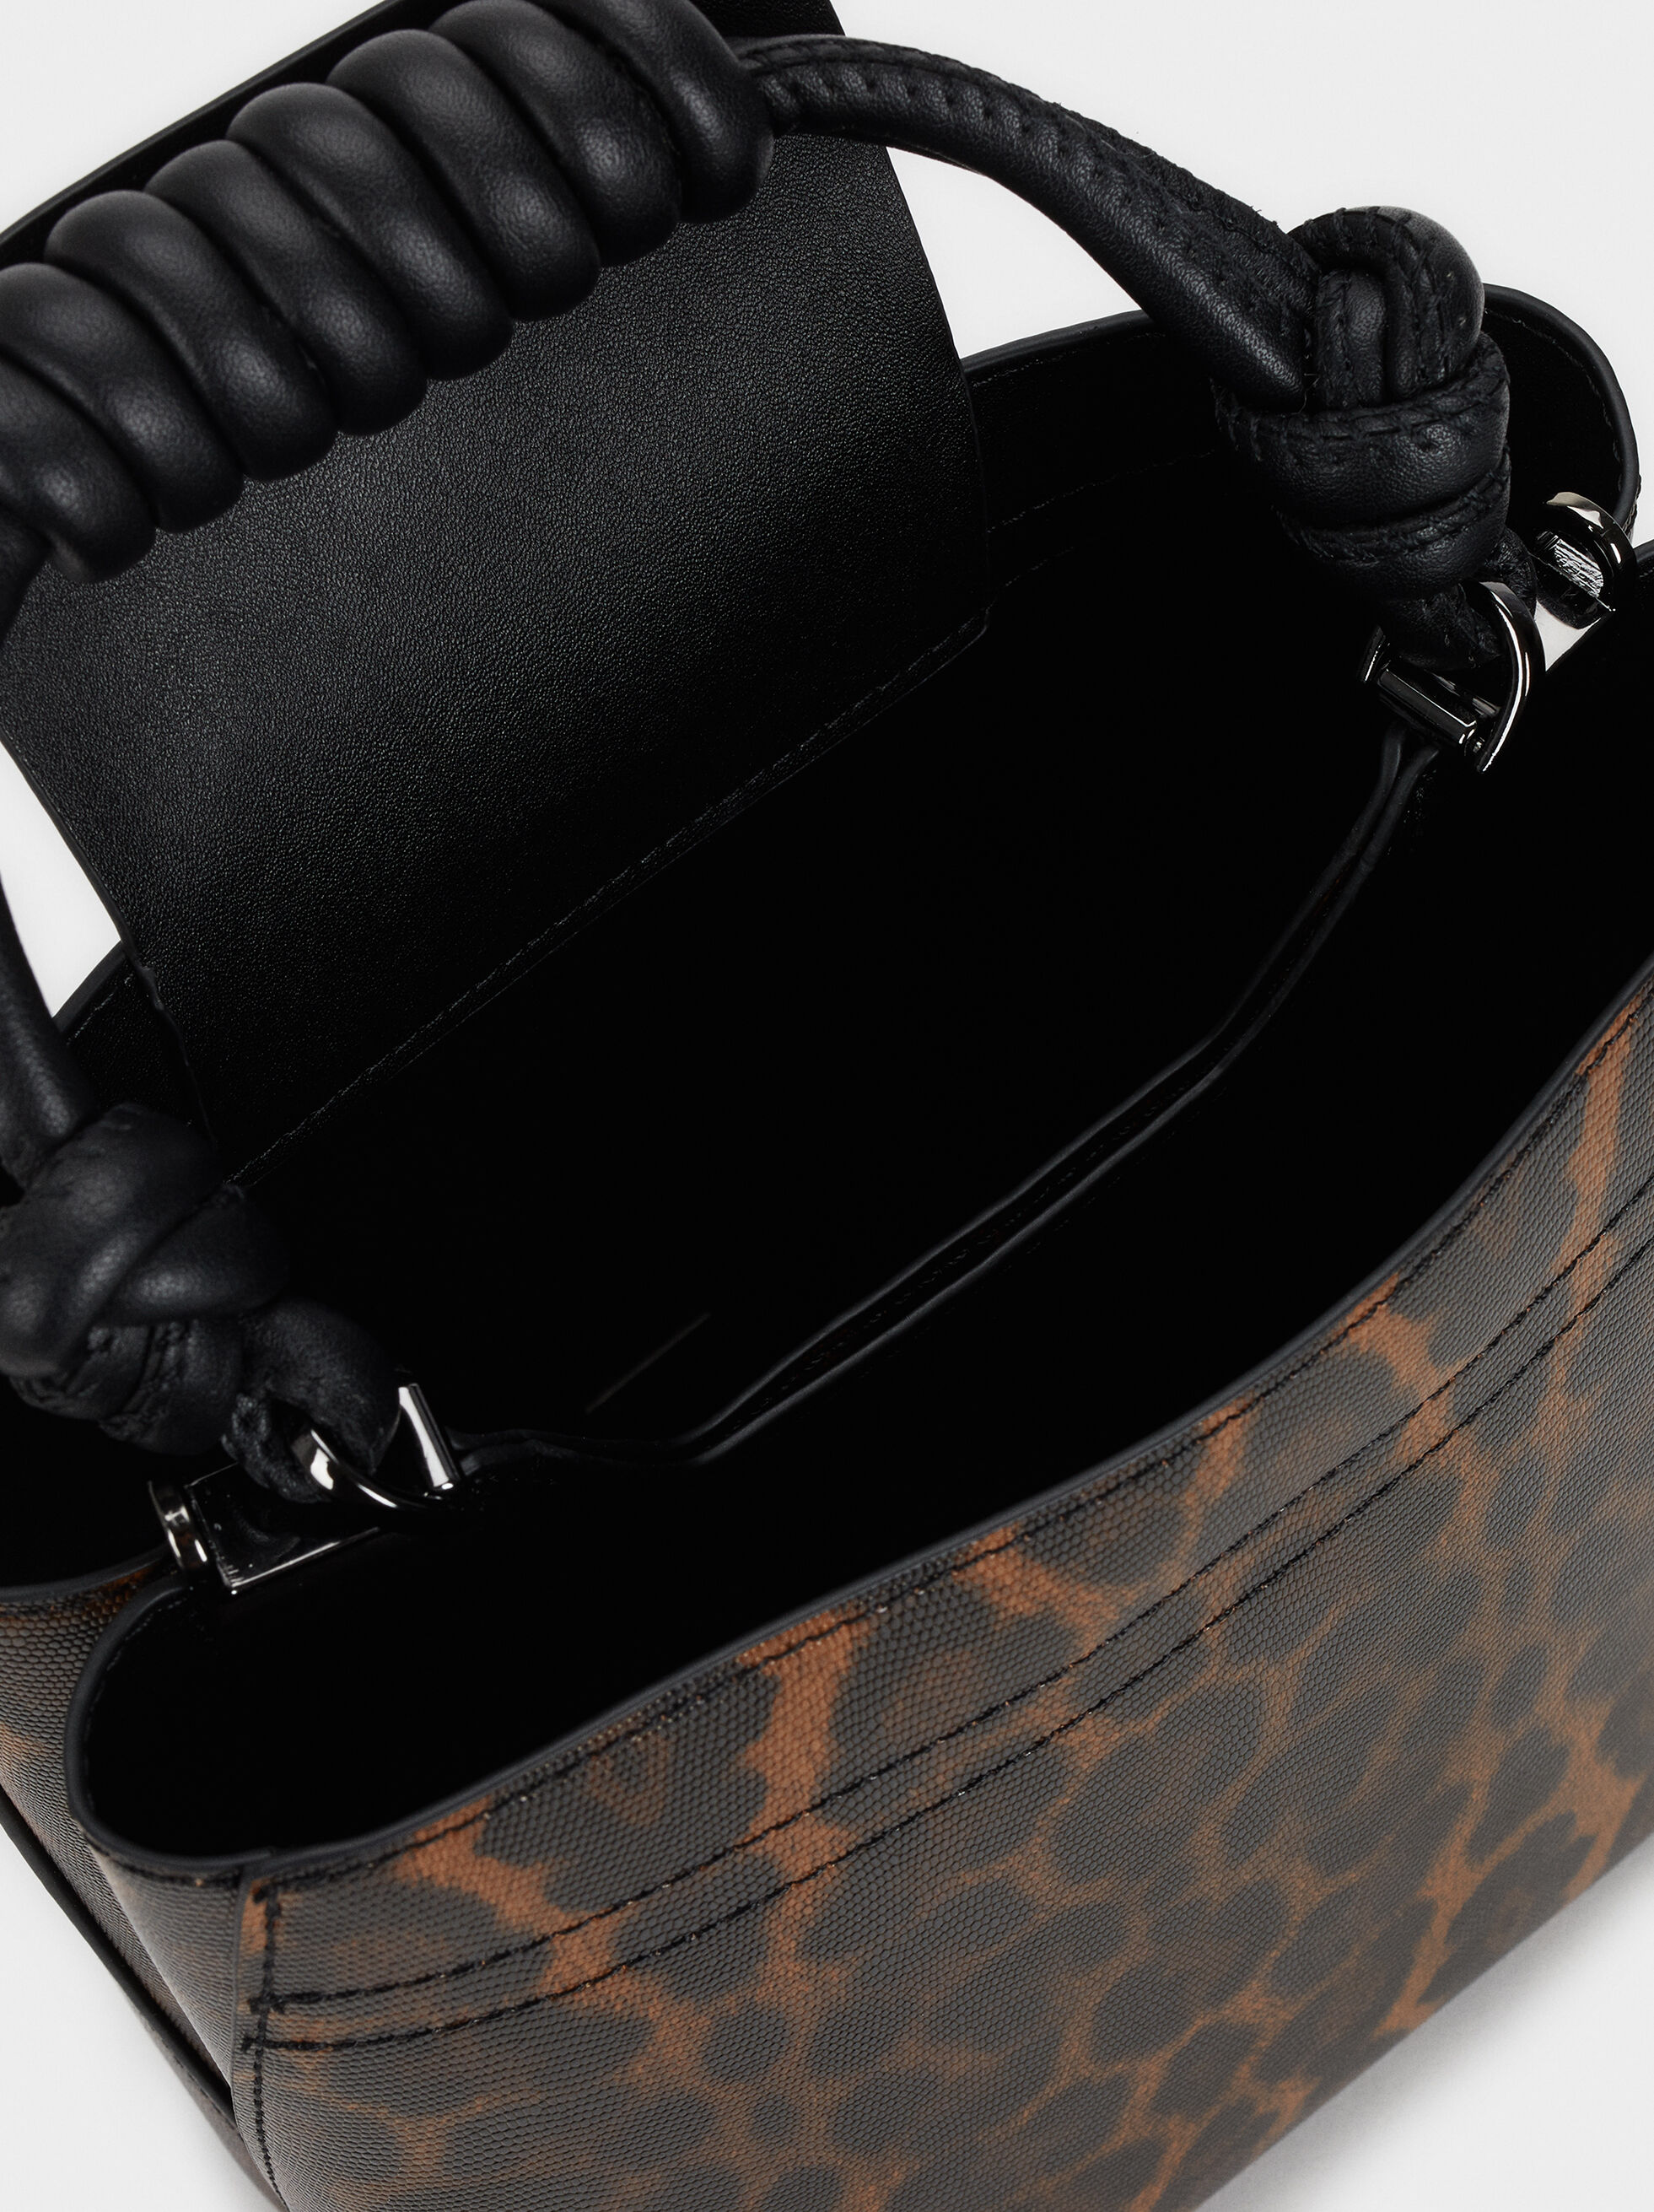 Jelly Bucket Handbag, Black, hi-res